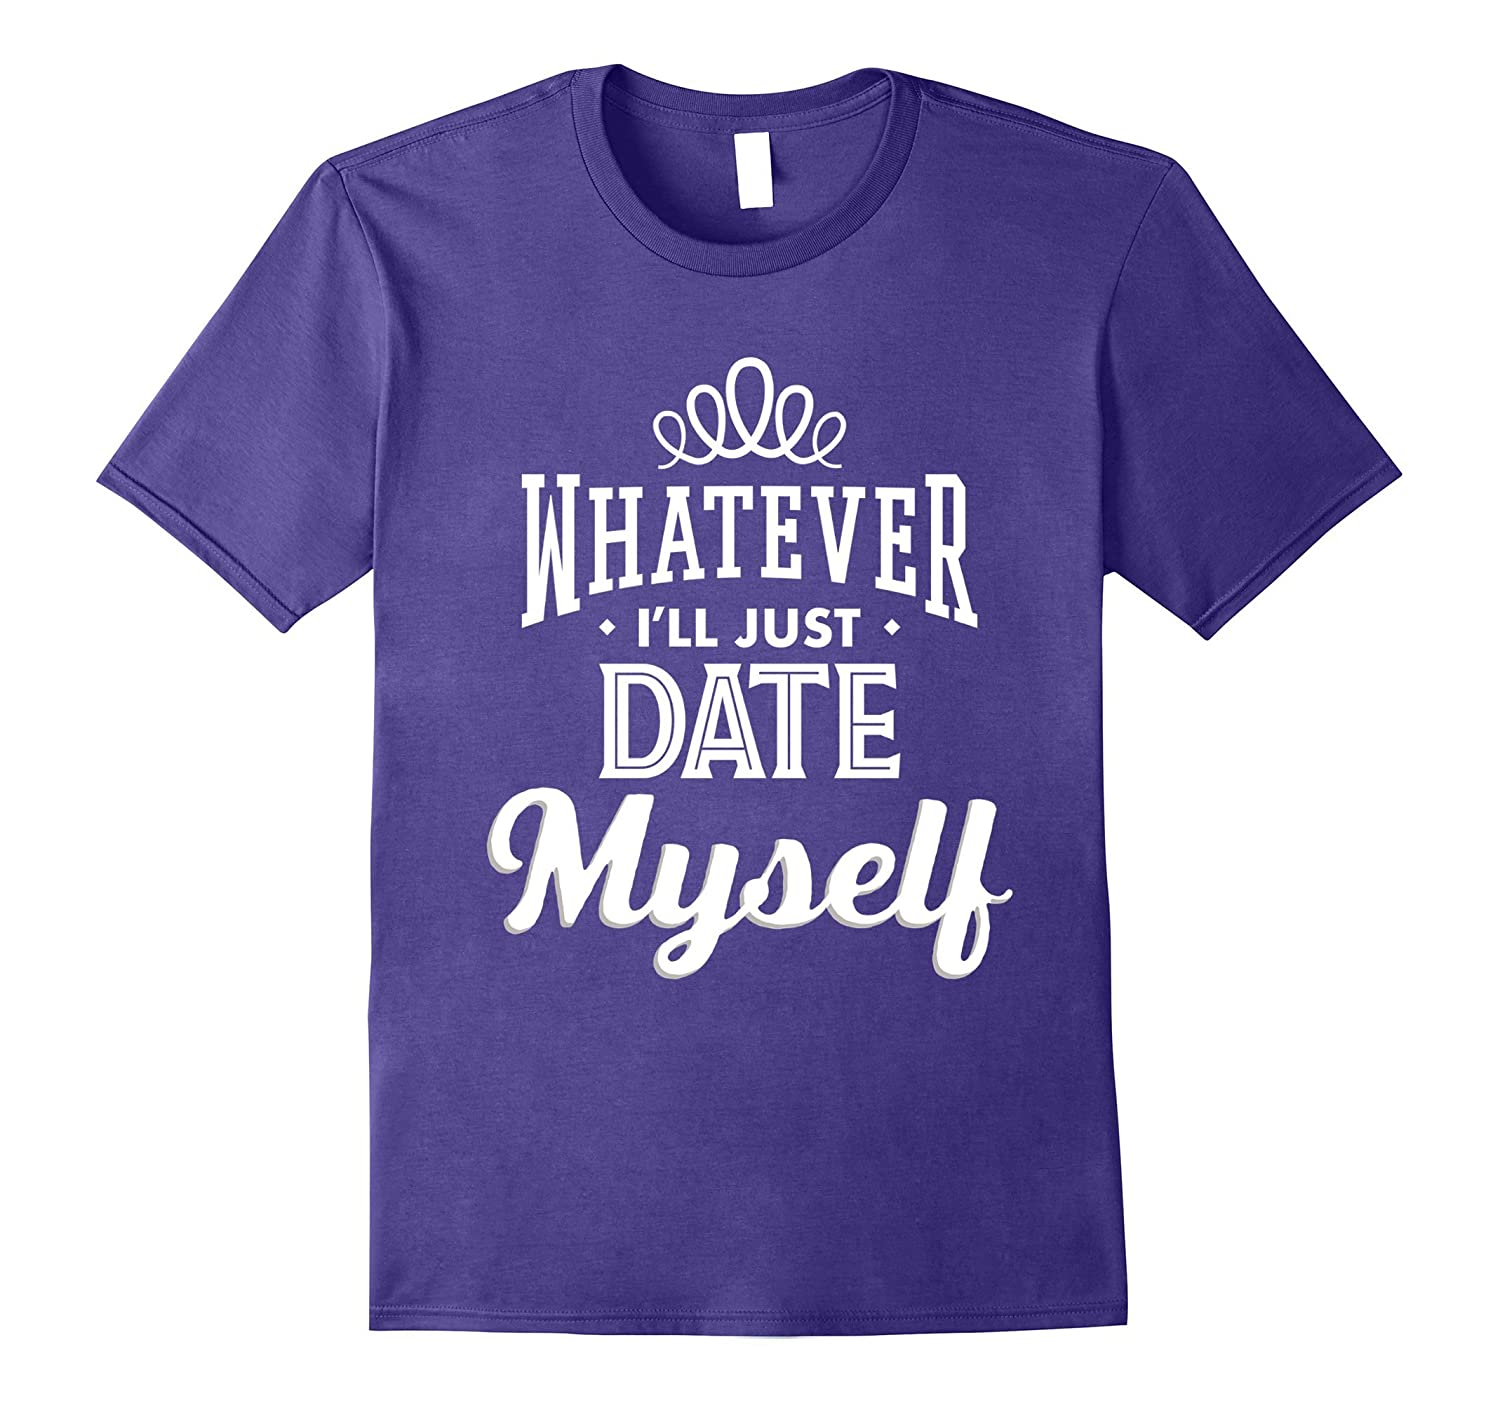 Whatever Ill Just Date Myself Funny Tee Vision T-Shirt-PL